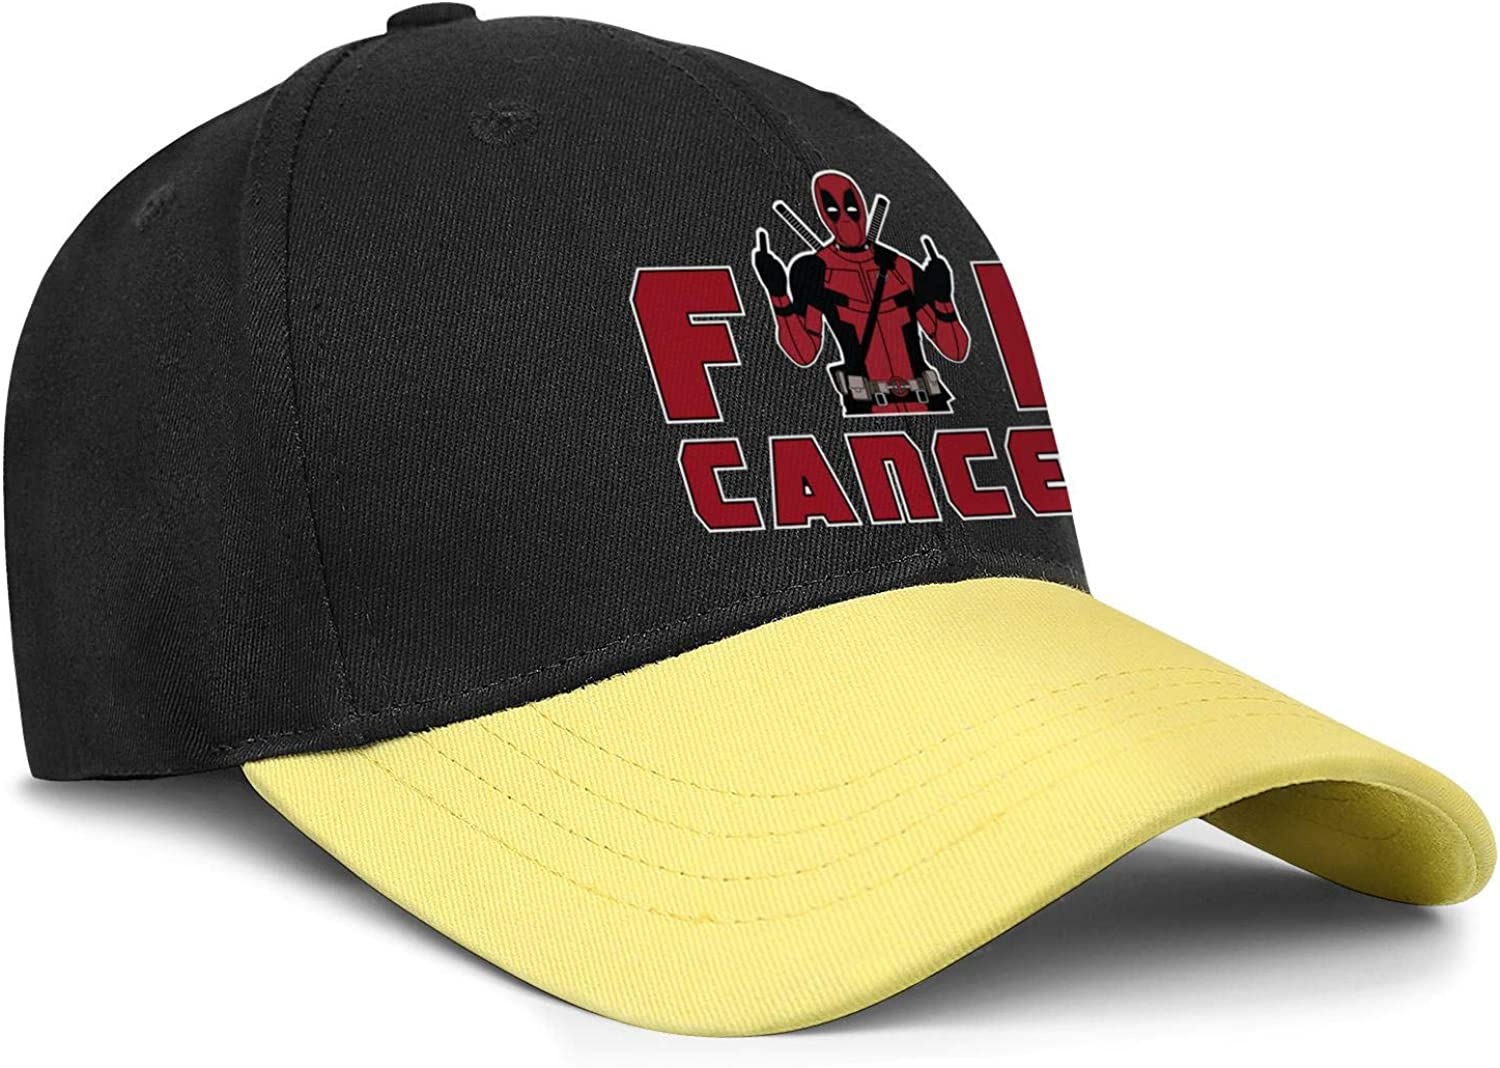 FengY Unisex FCK Cancer Adjustablecowboy Hat Printed Trucker Cap Snapback Hat